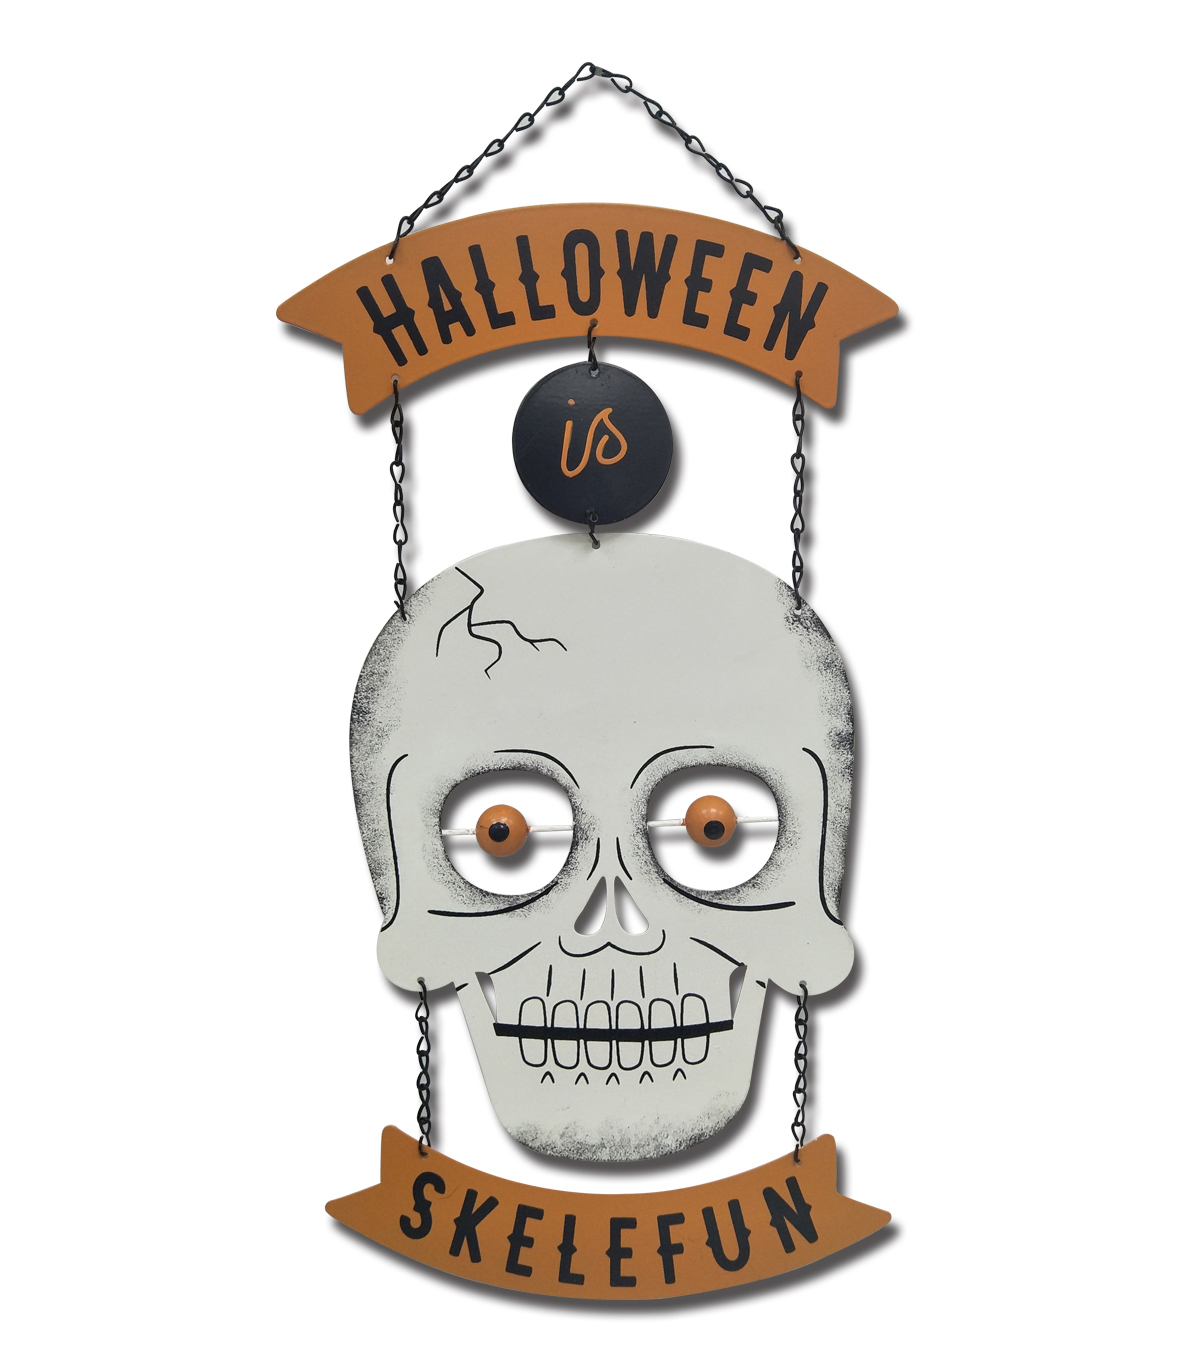 Maker\u0027s Halloween Skull Wall Decor-Halloween is Skelefun